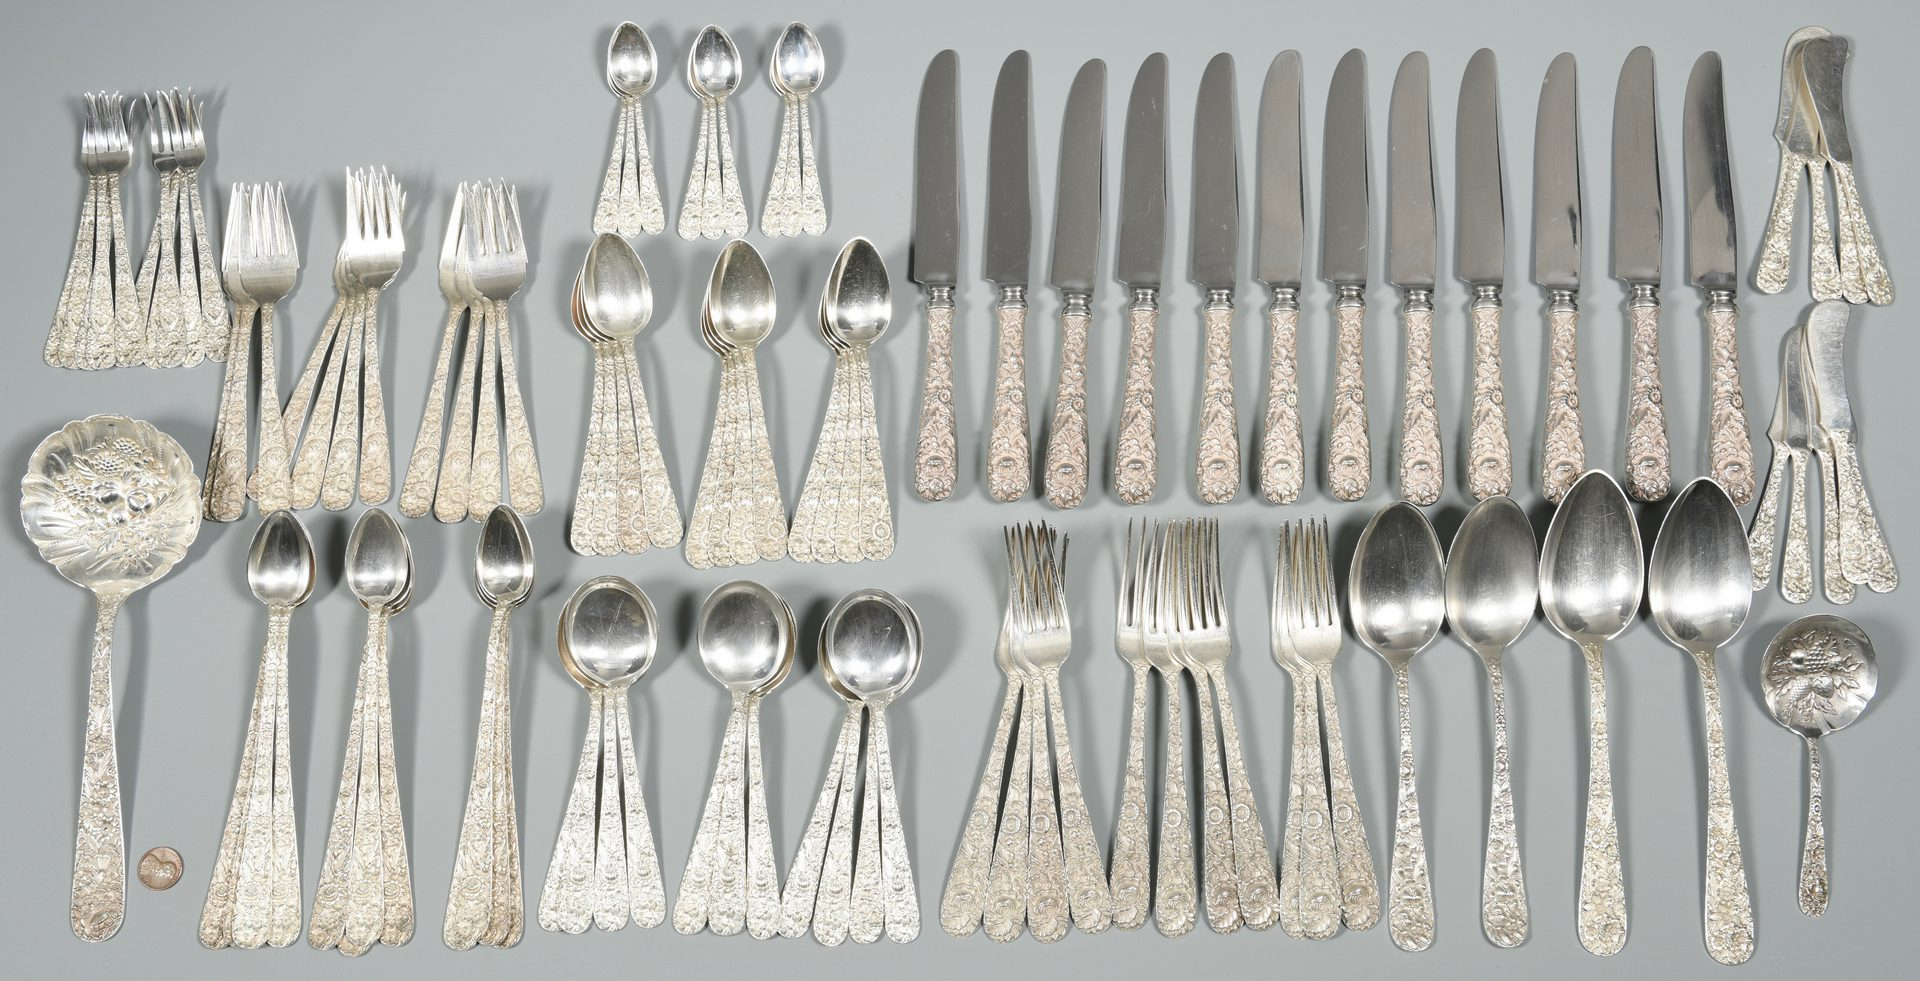 Lot 51: Kirk Stieff Sterling, Repousse Pattern, 104 pcs